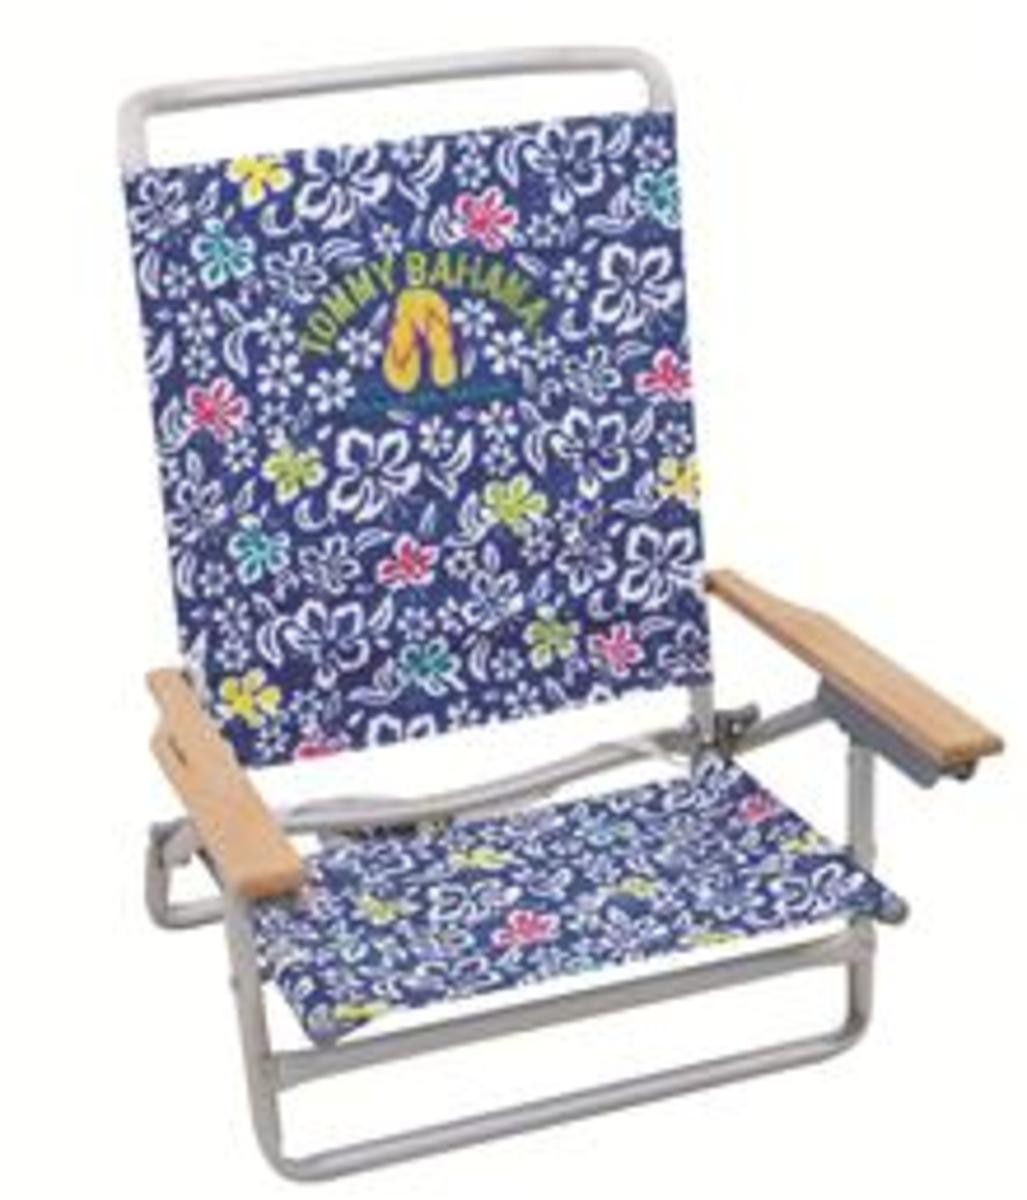 tommy bahama backpack cooler chair blue pine kitchen chairs with arms classic lay flat sand